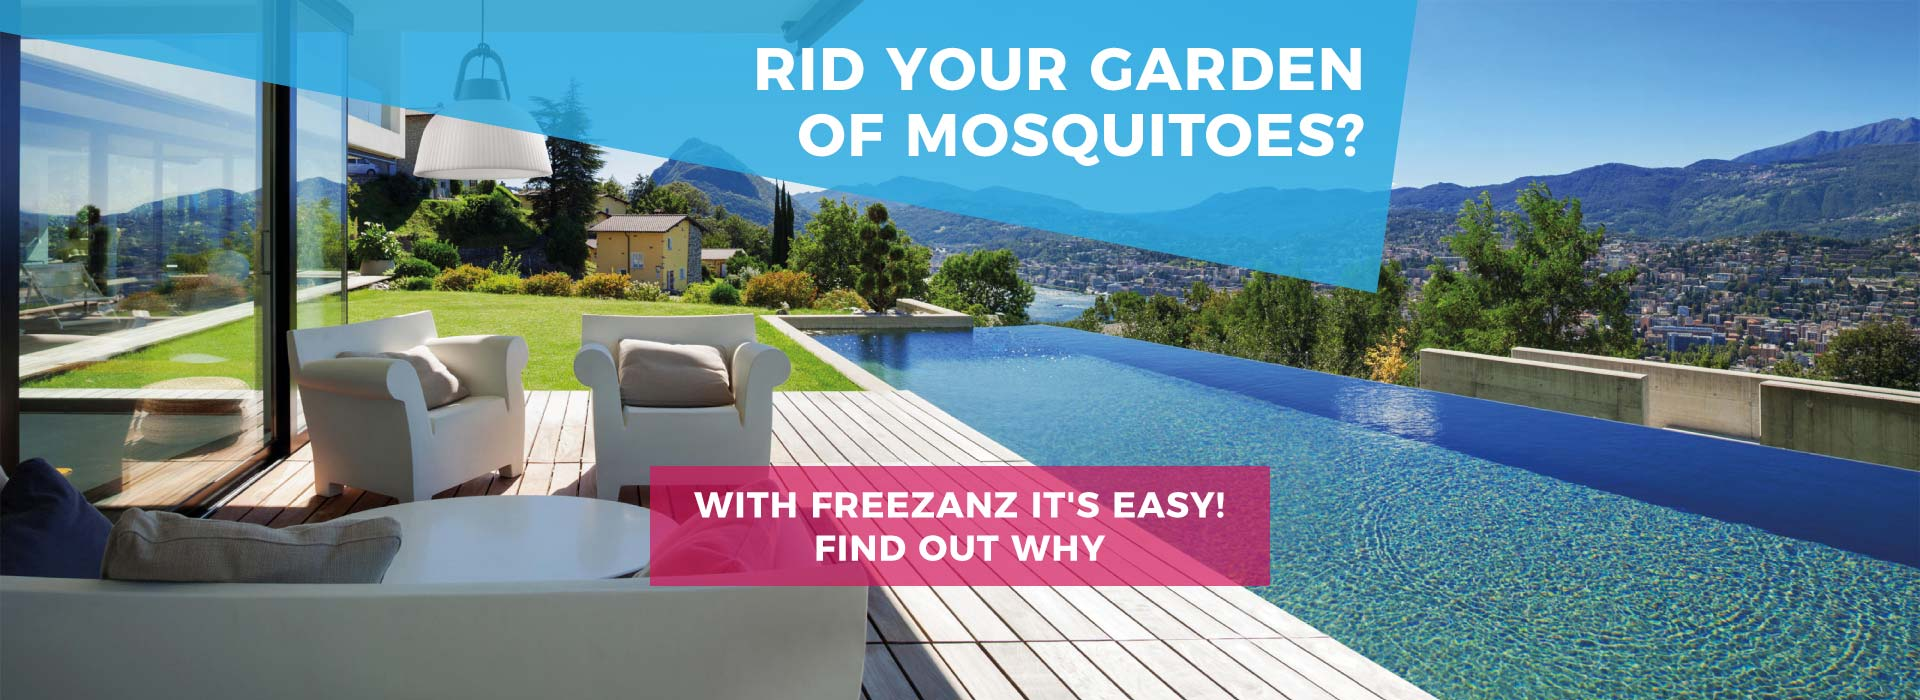 Mosquito misting systems for gardens